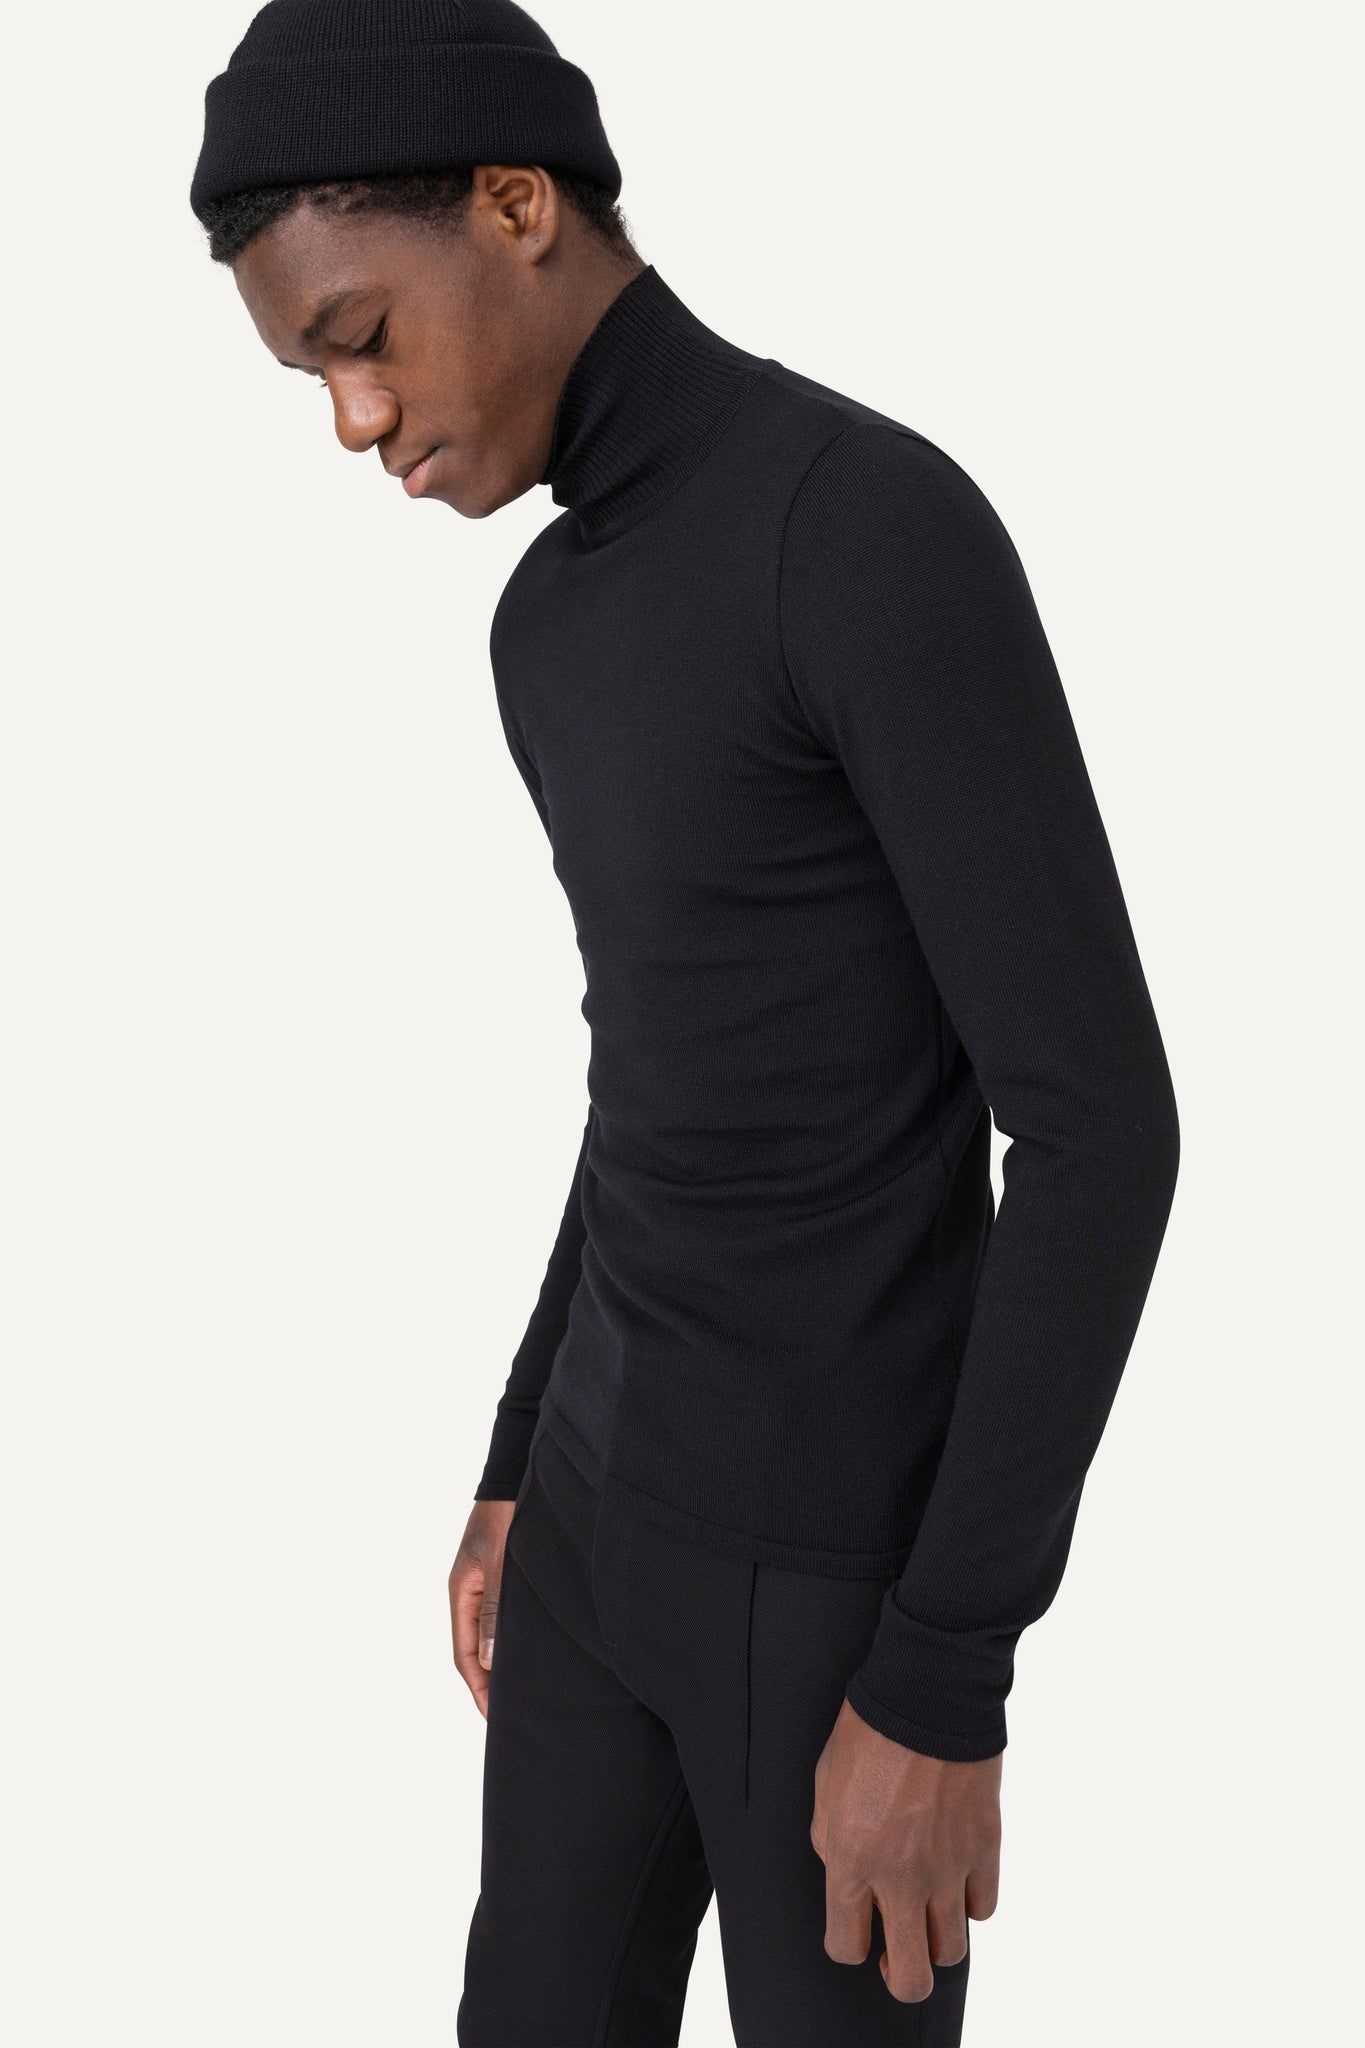 504 LOW TURTLENECK